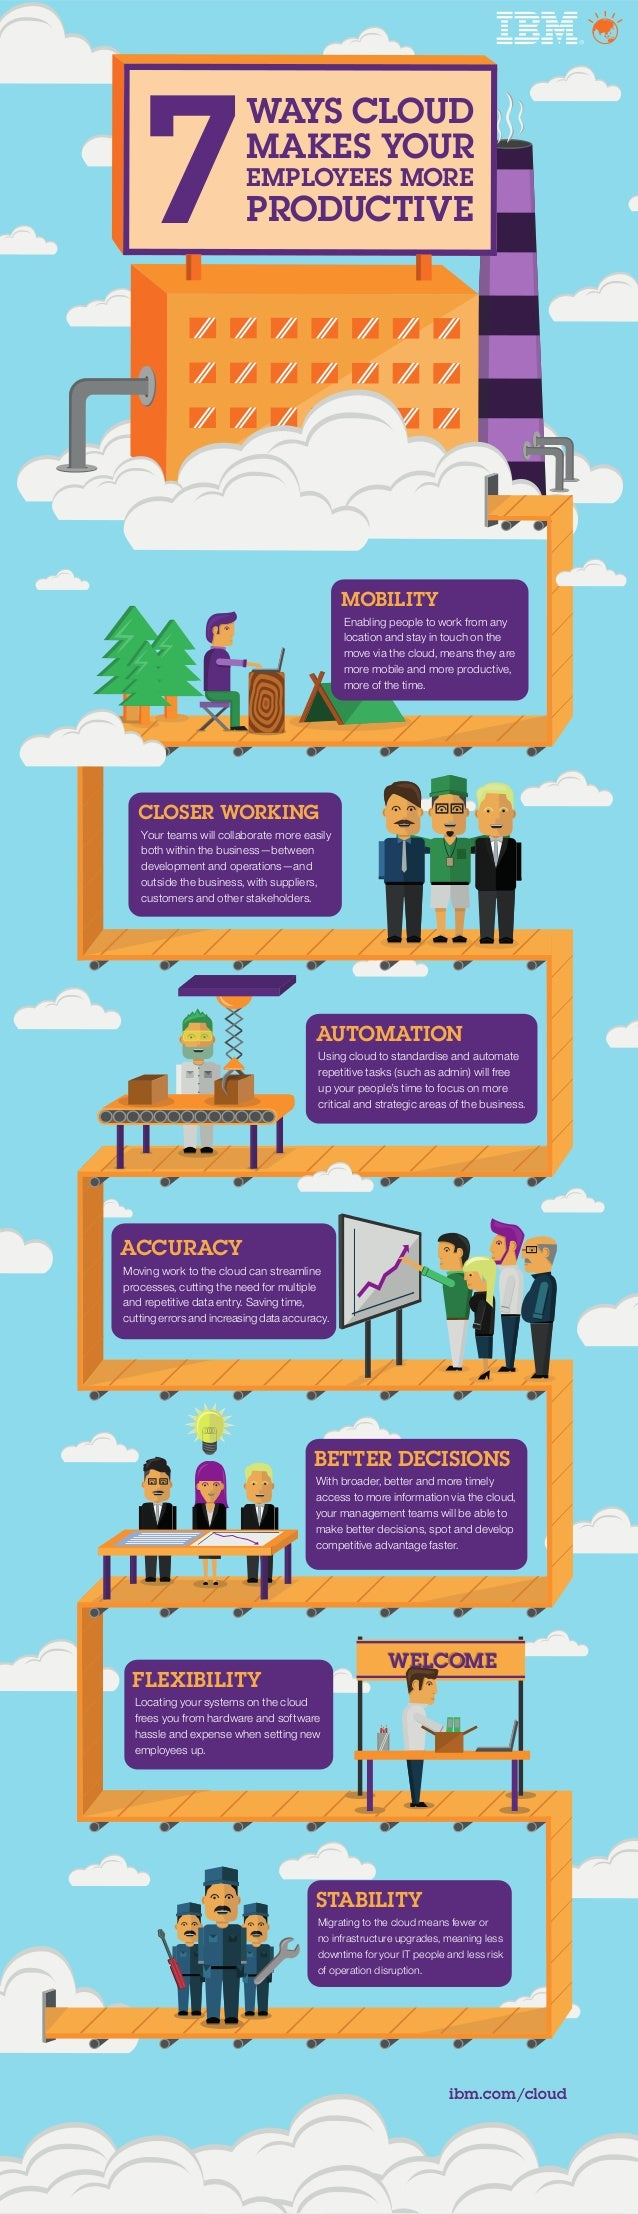 7 WAYS CLOUD MAKES YOUR EMPLOYEES MORE PRODUCTIVE MOBILITY Enabling people to work from any location and stay in touch on ...